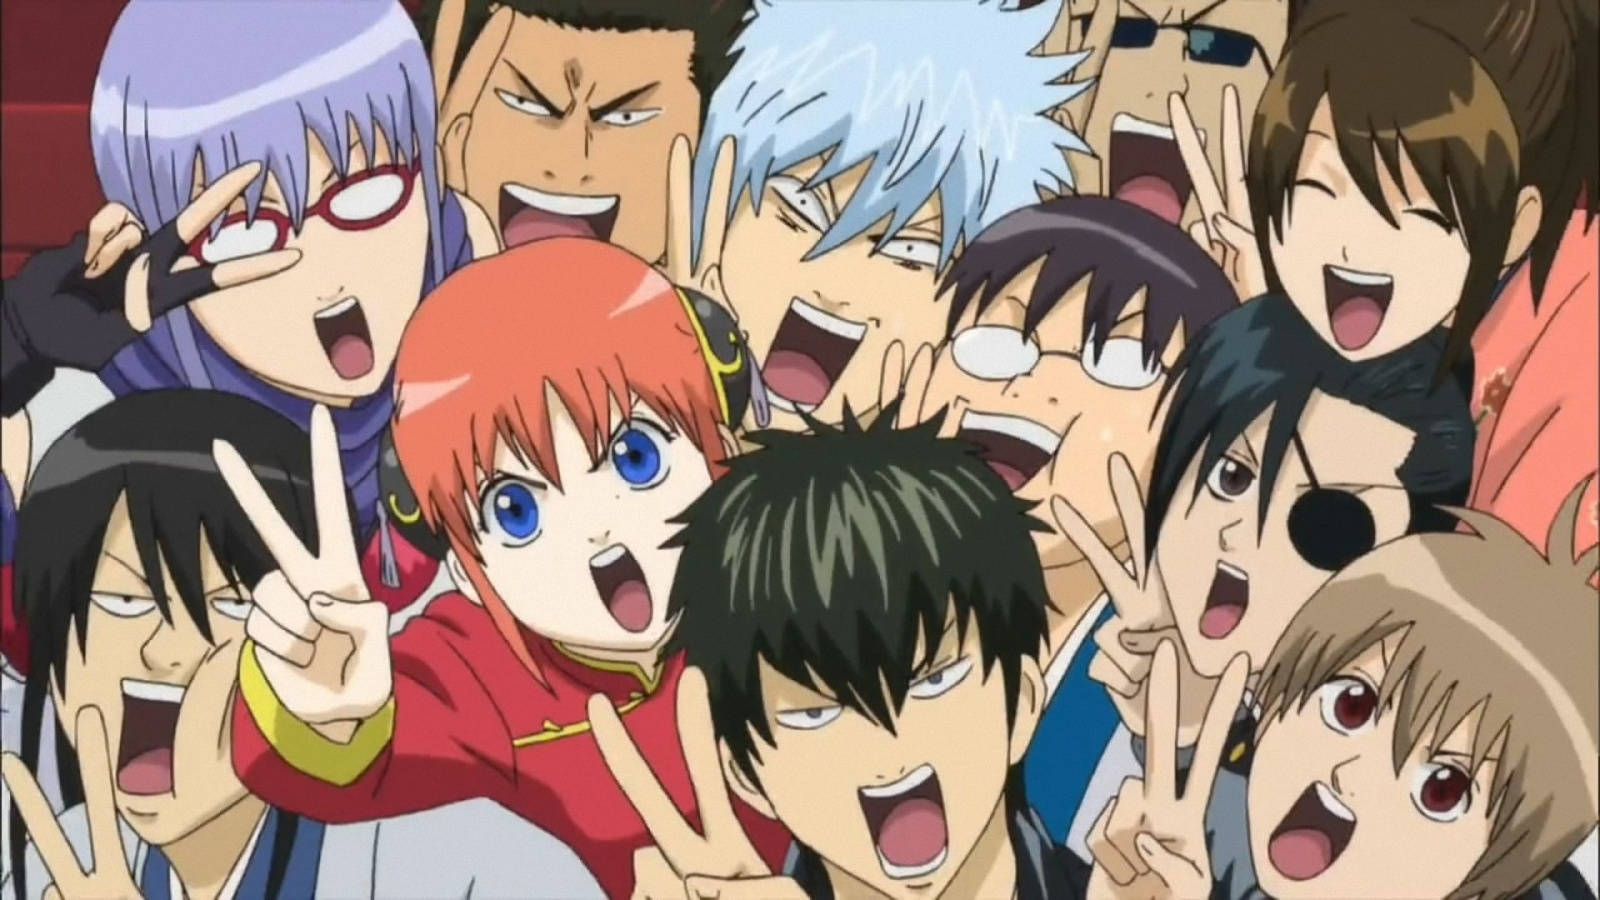 Gintama group Kabukicho